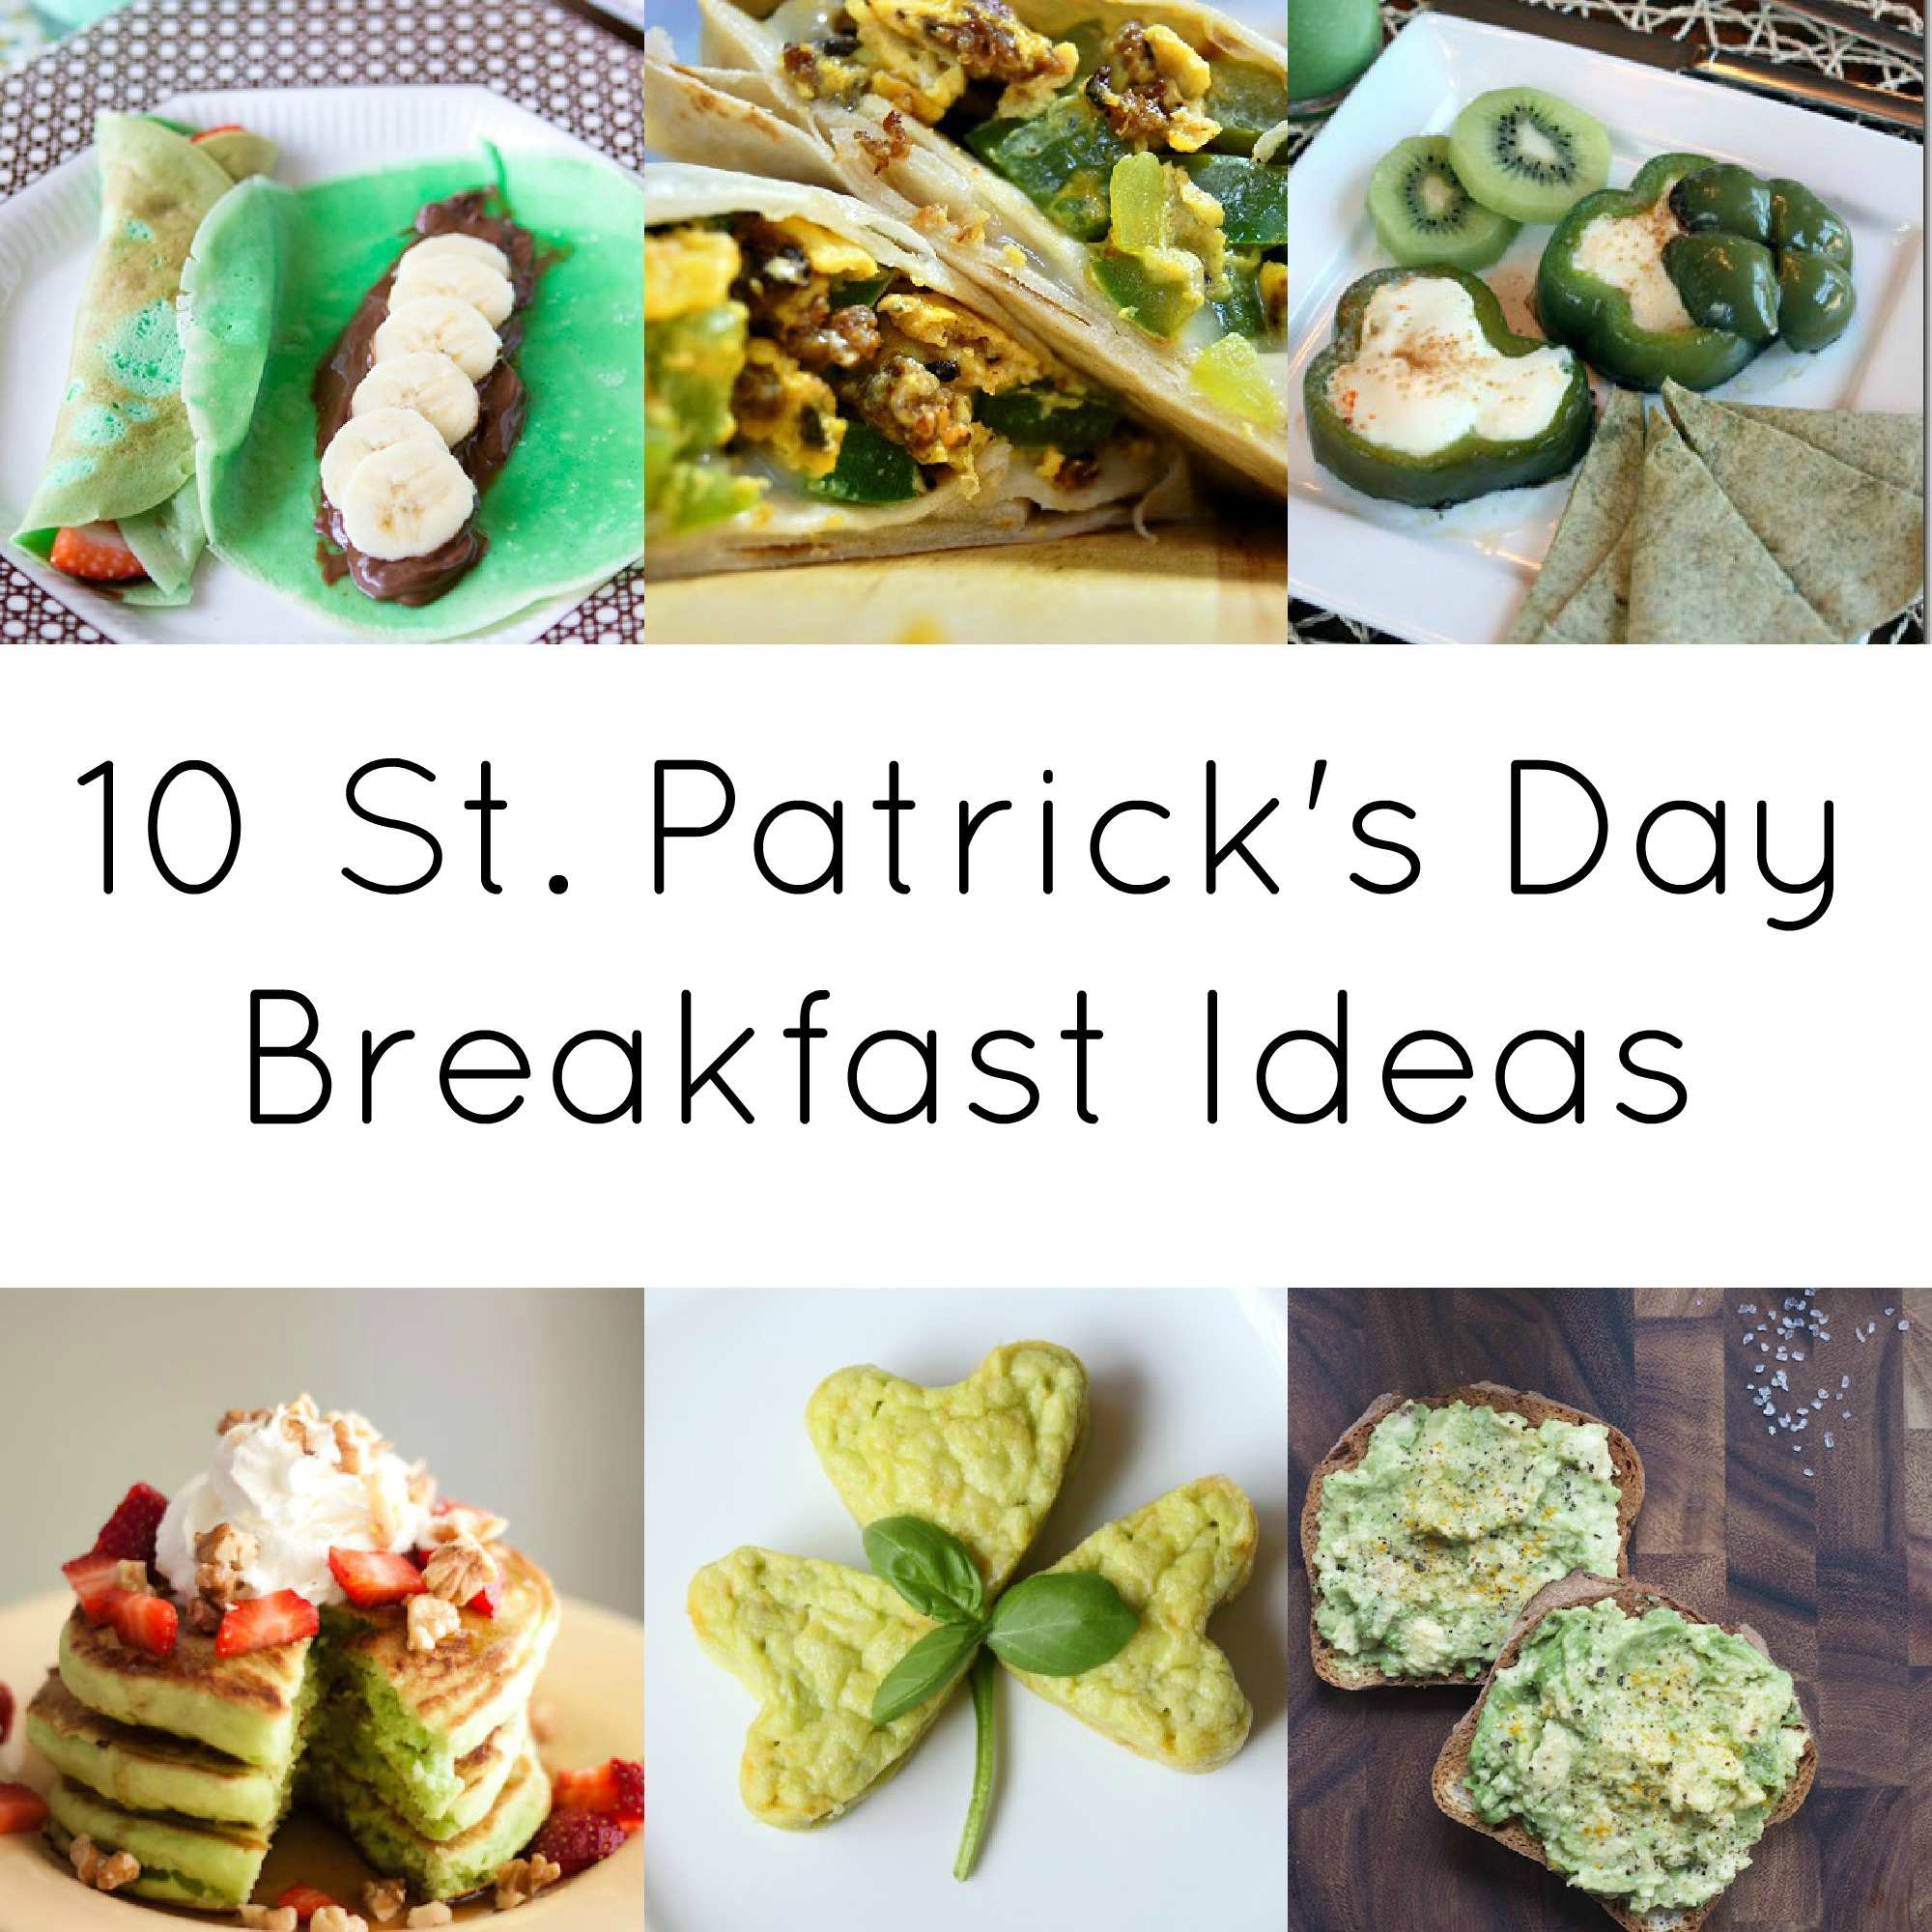 10 St. Patrick's Day Breakfast Ideas